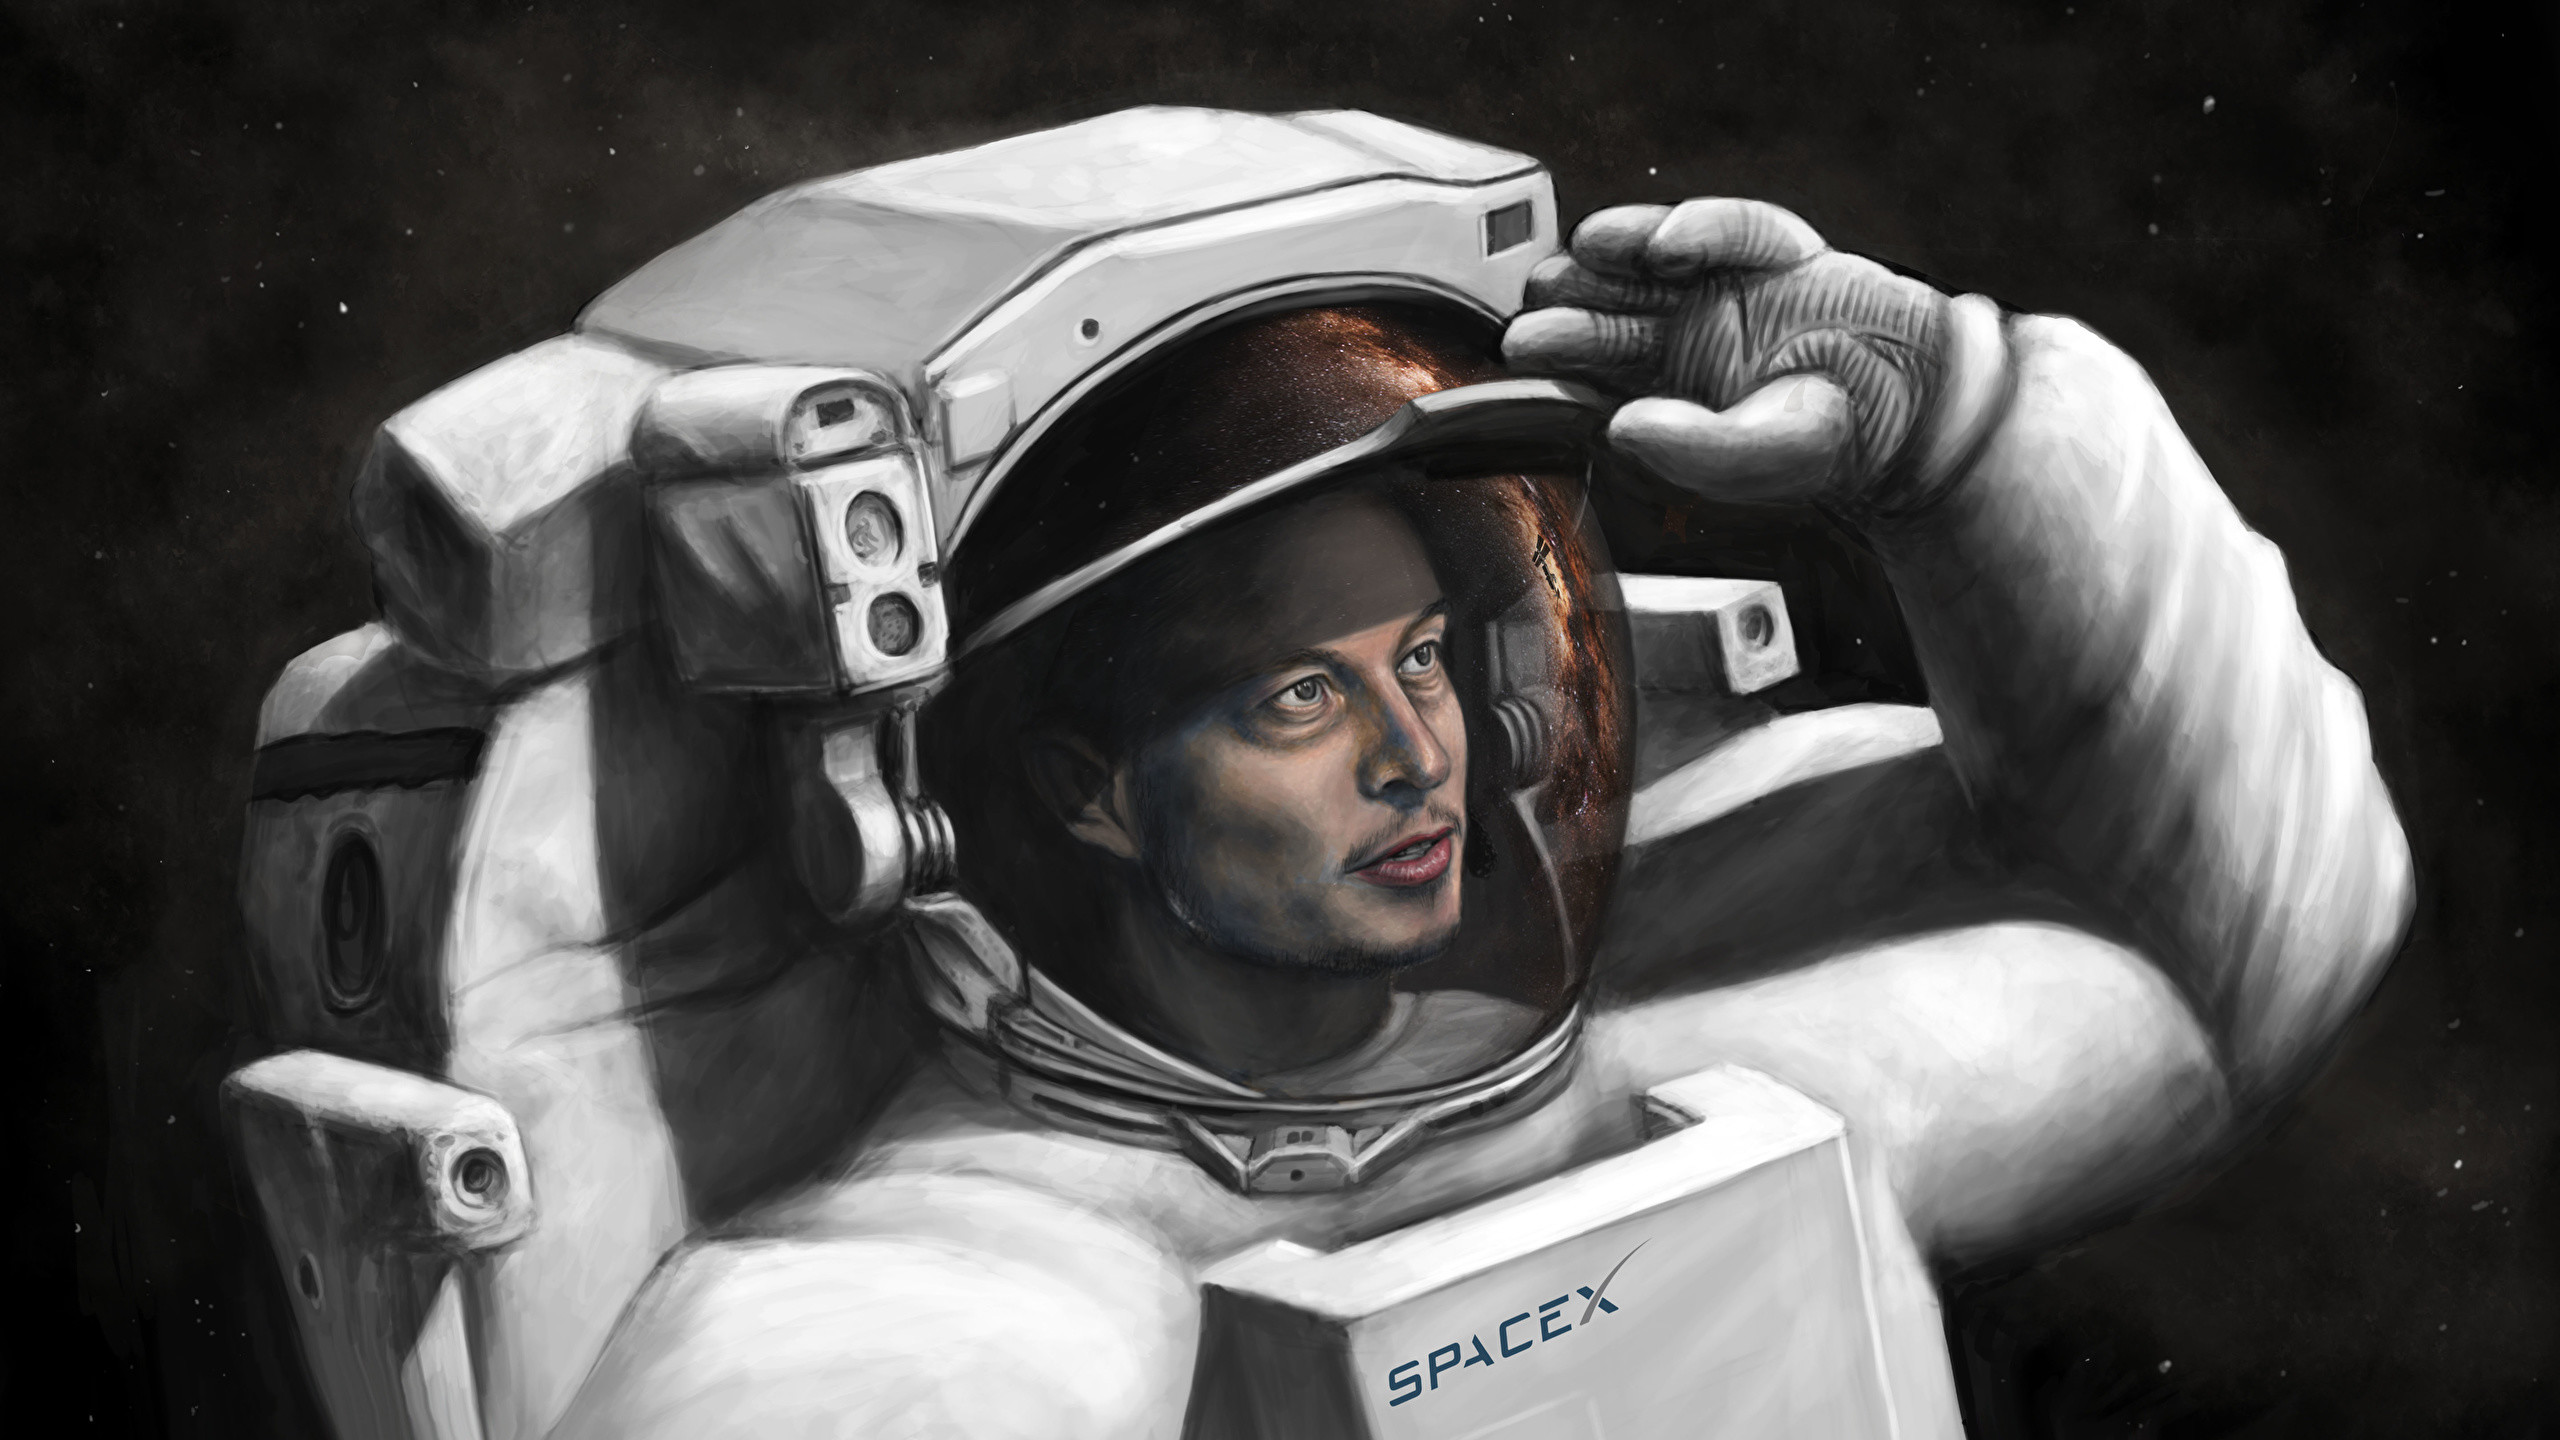 Image Cosmonauts Elon Musk, SpaceX Space Painting Art 2560×1440